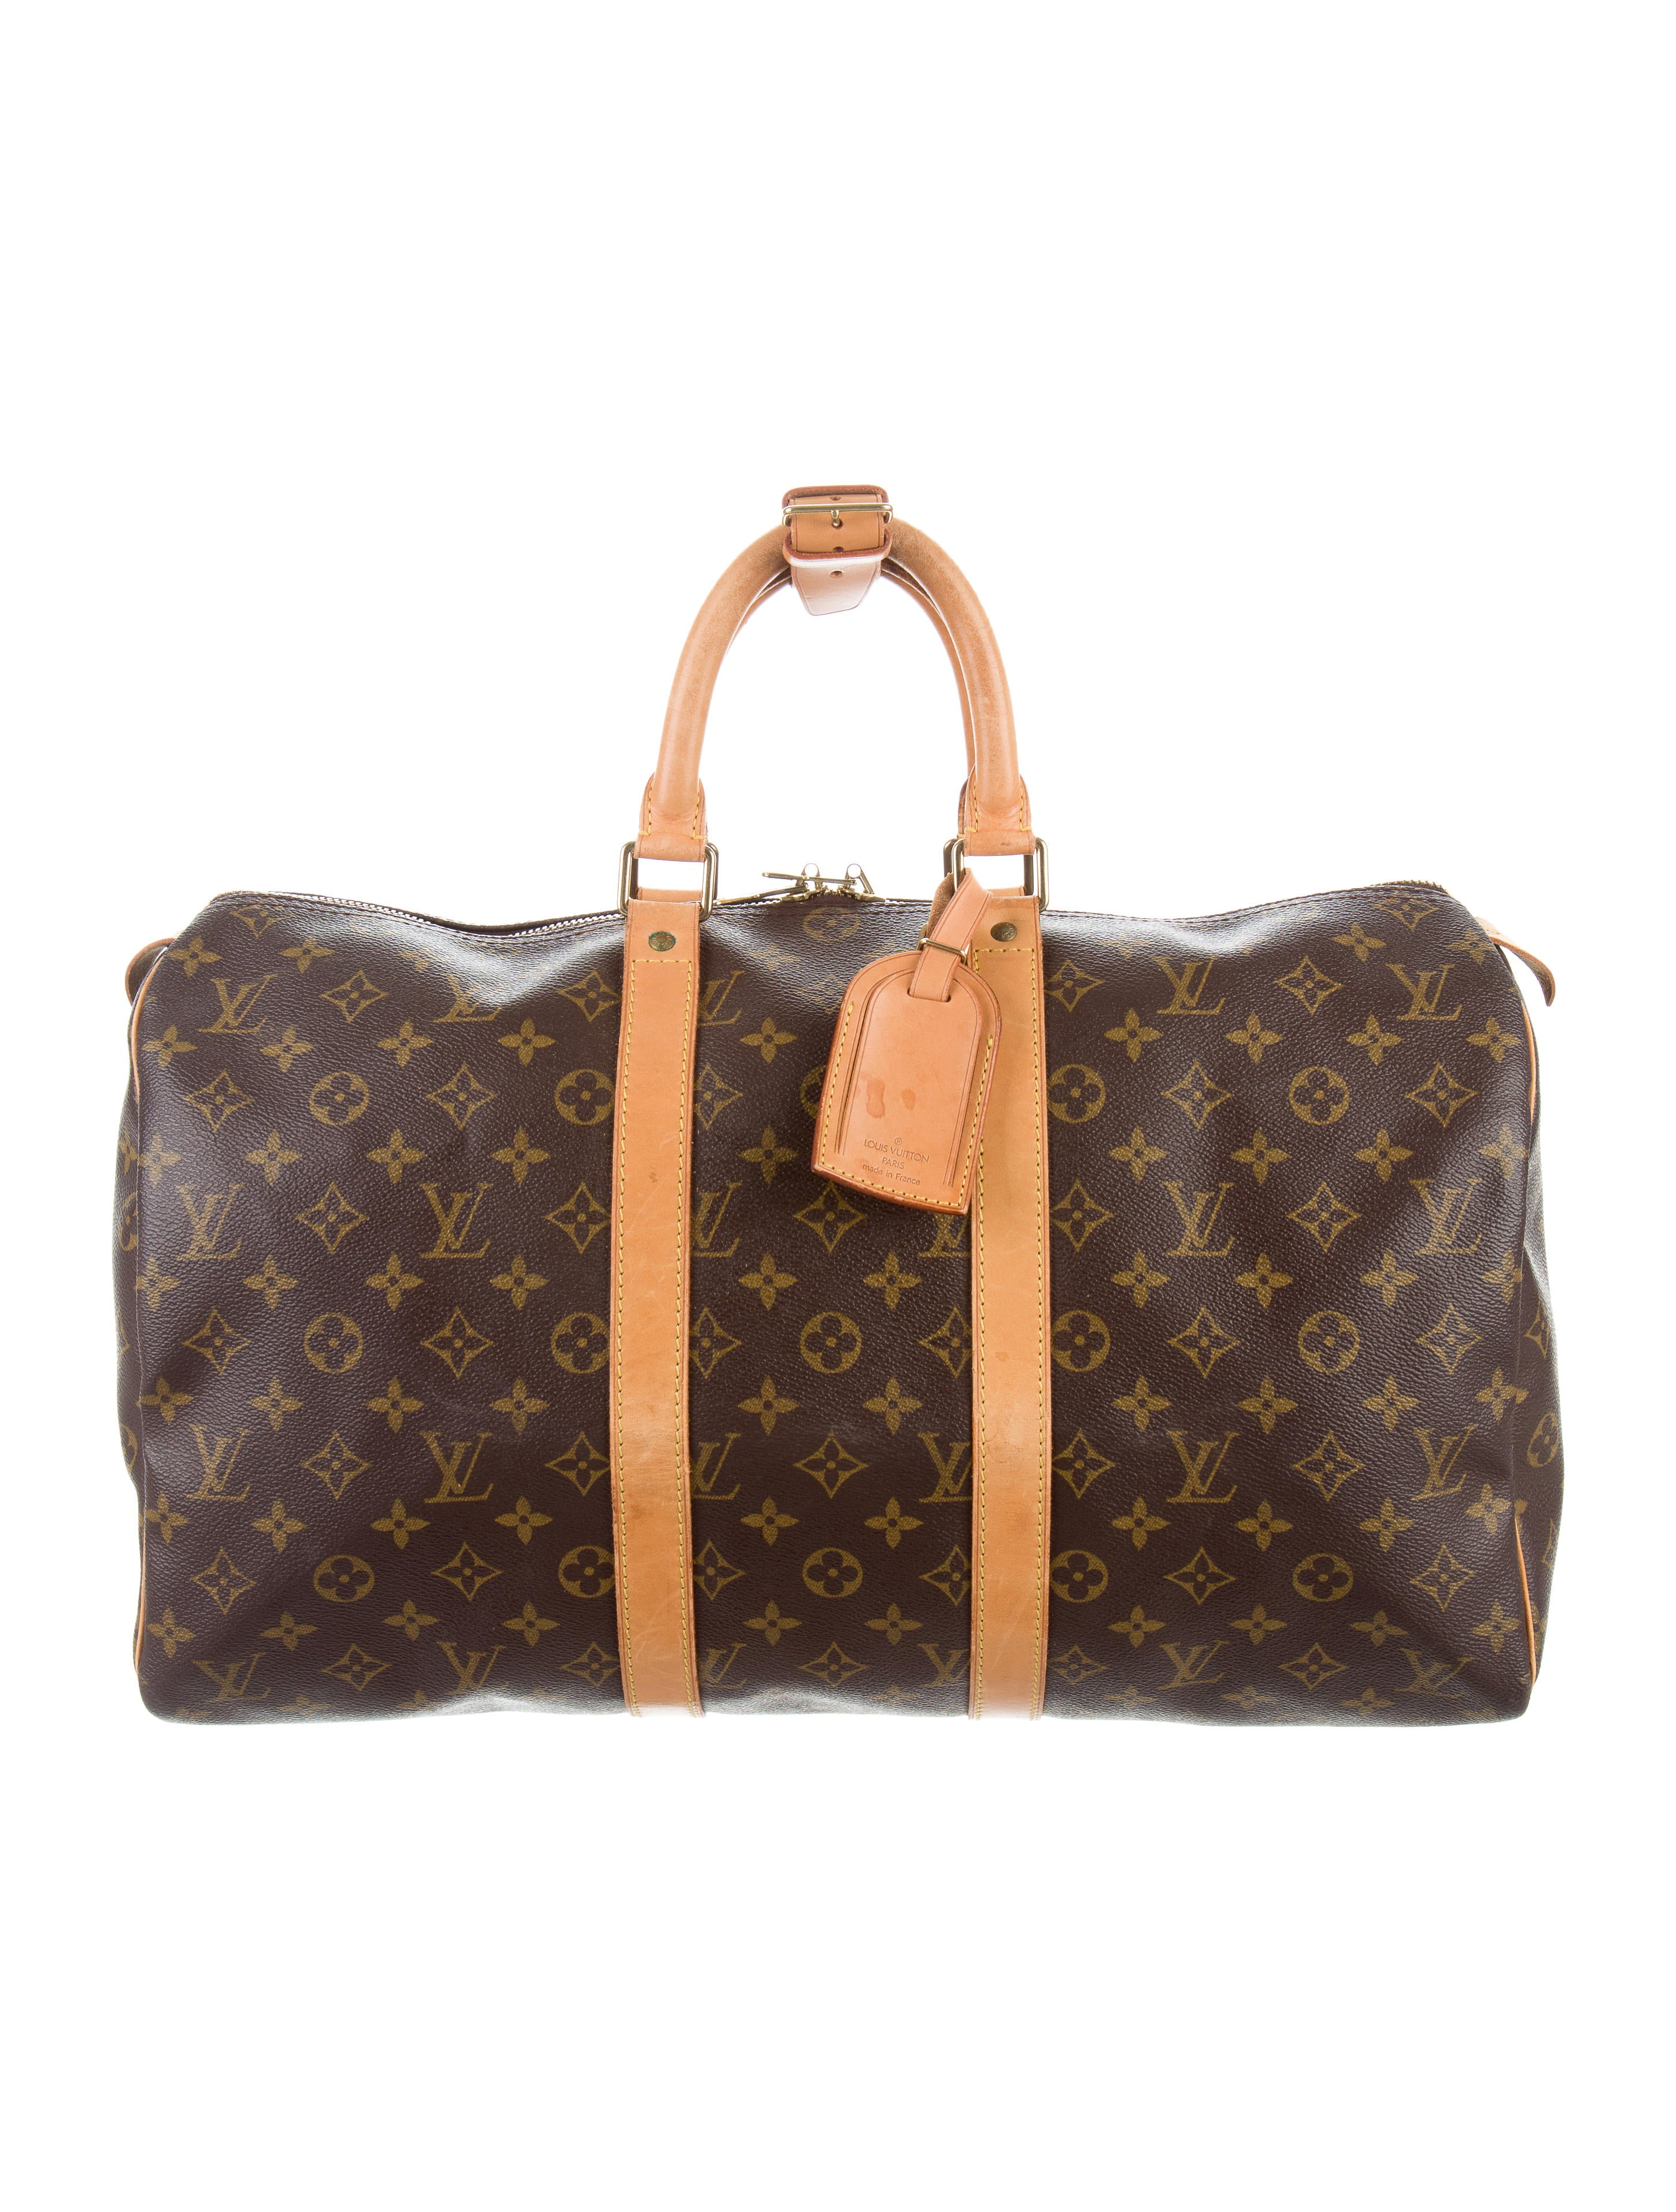 louis vuitton monogram keepall 45 bags lou130174 the realreal. Black Bedroom Furniture Sets. Home Design Ideas